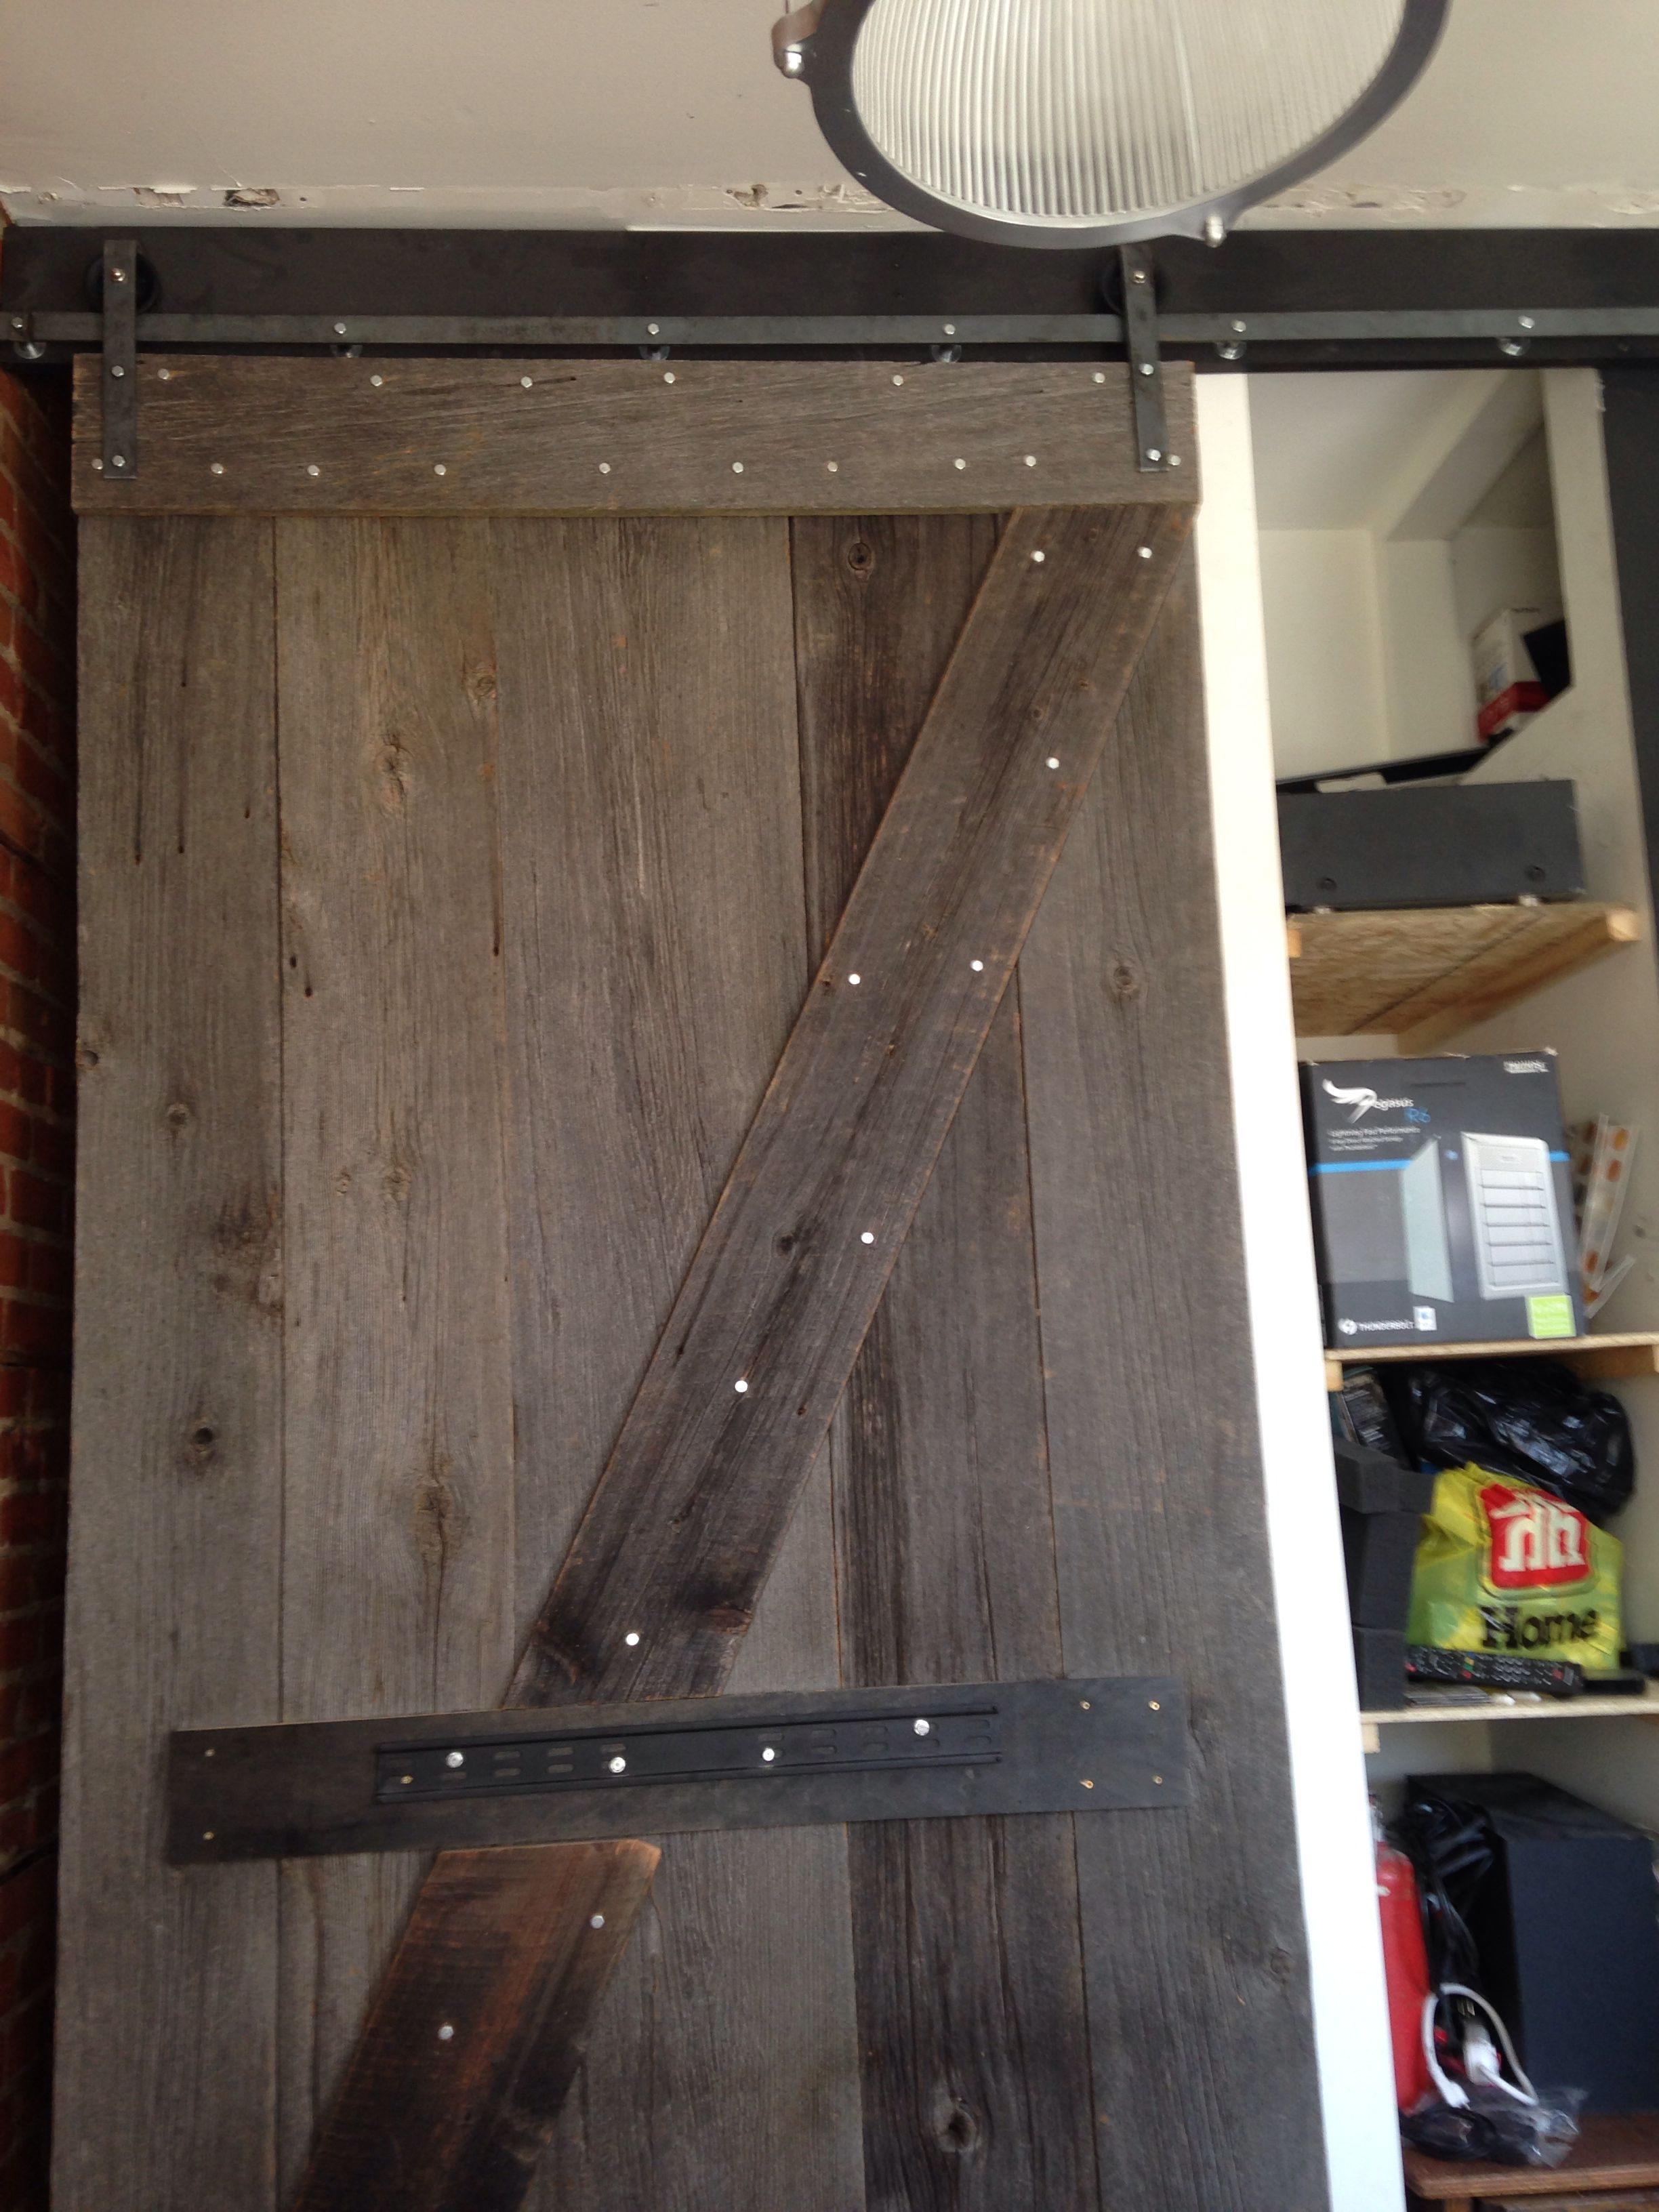 Just finished installing the Barn door for Upstatepost at 785